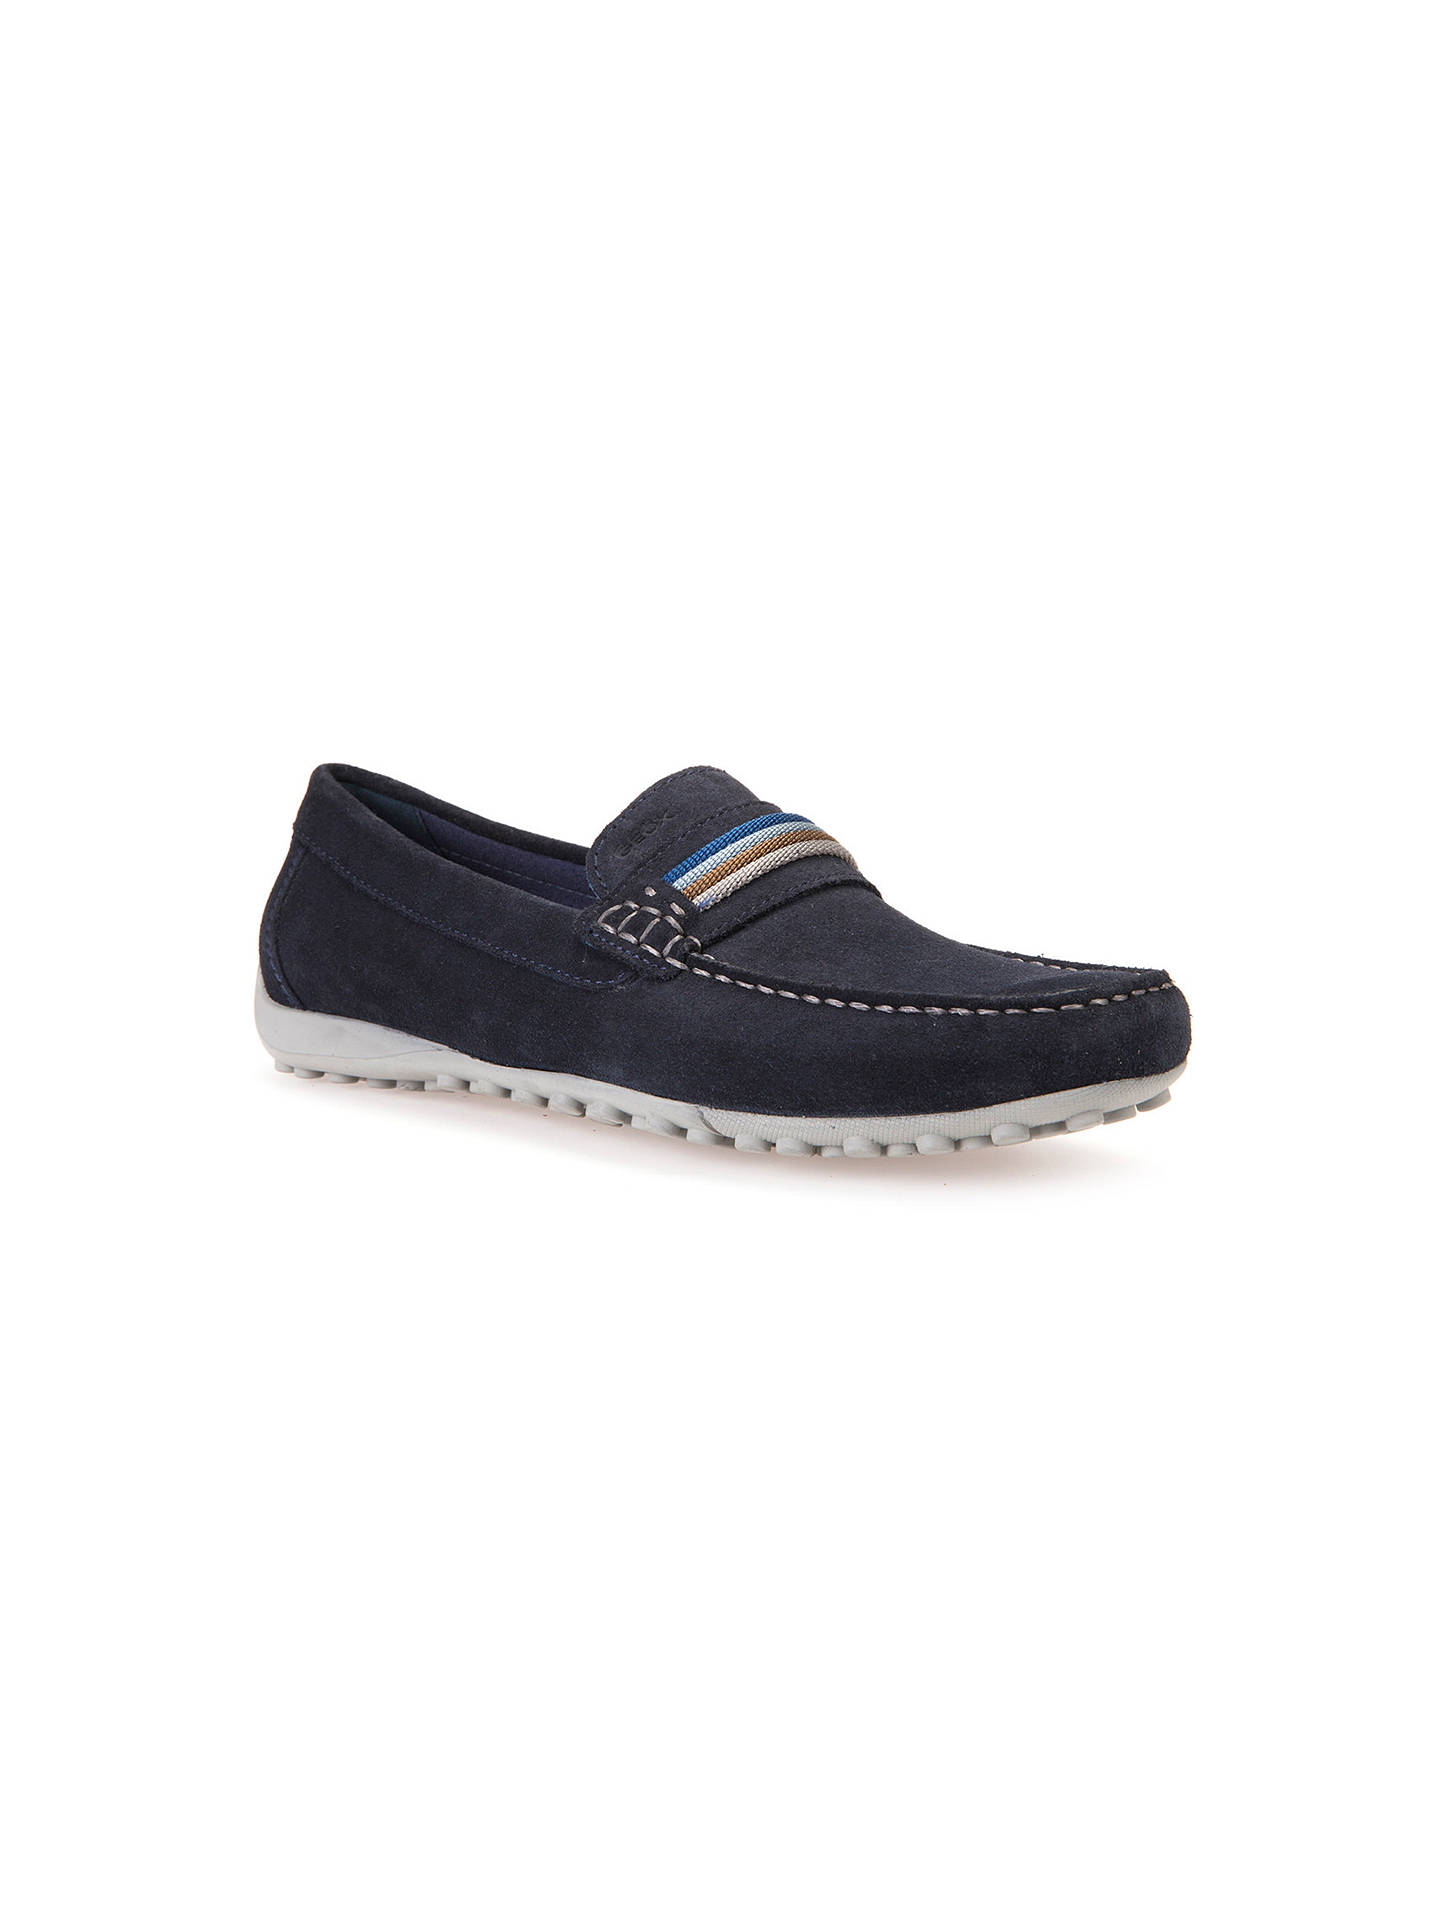 0cb5408a84a Buy Geox Snake Trainers, Navy, 7 Online at johnlewis.com ...